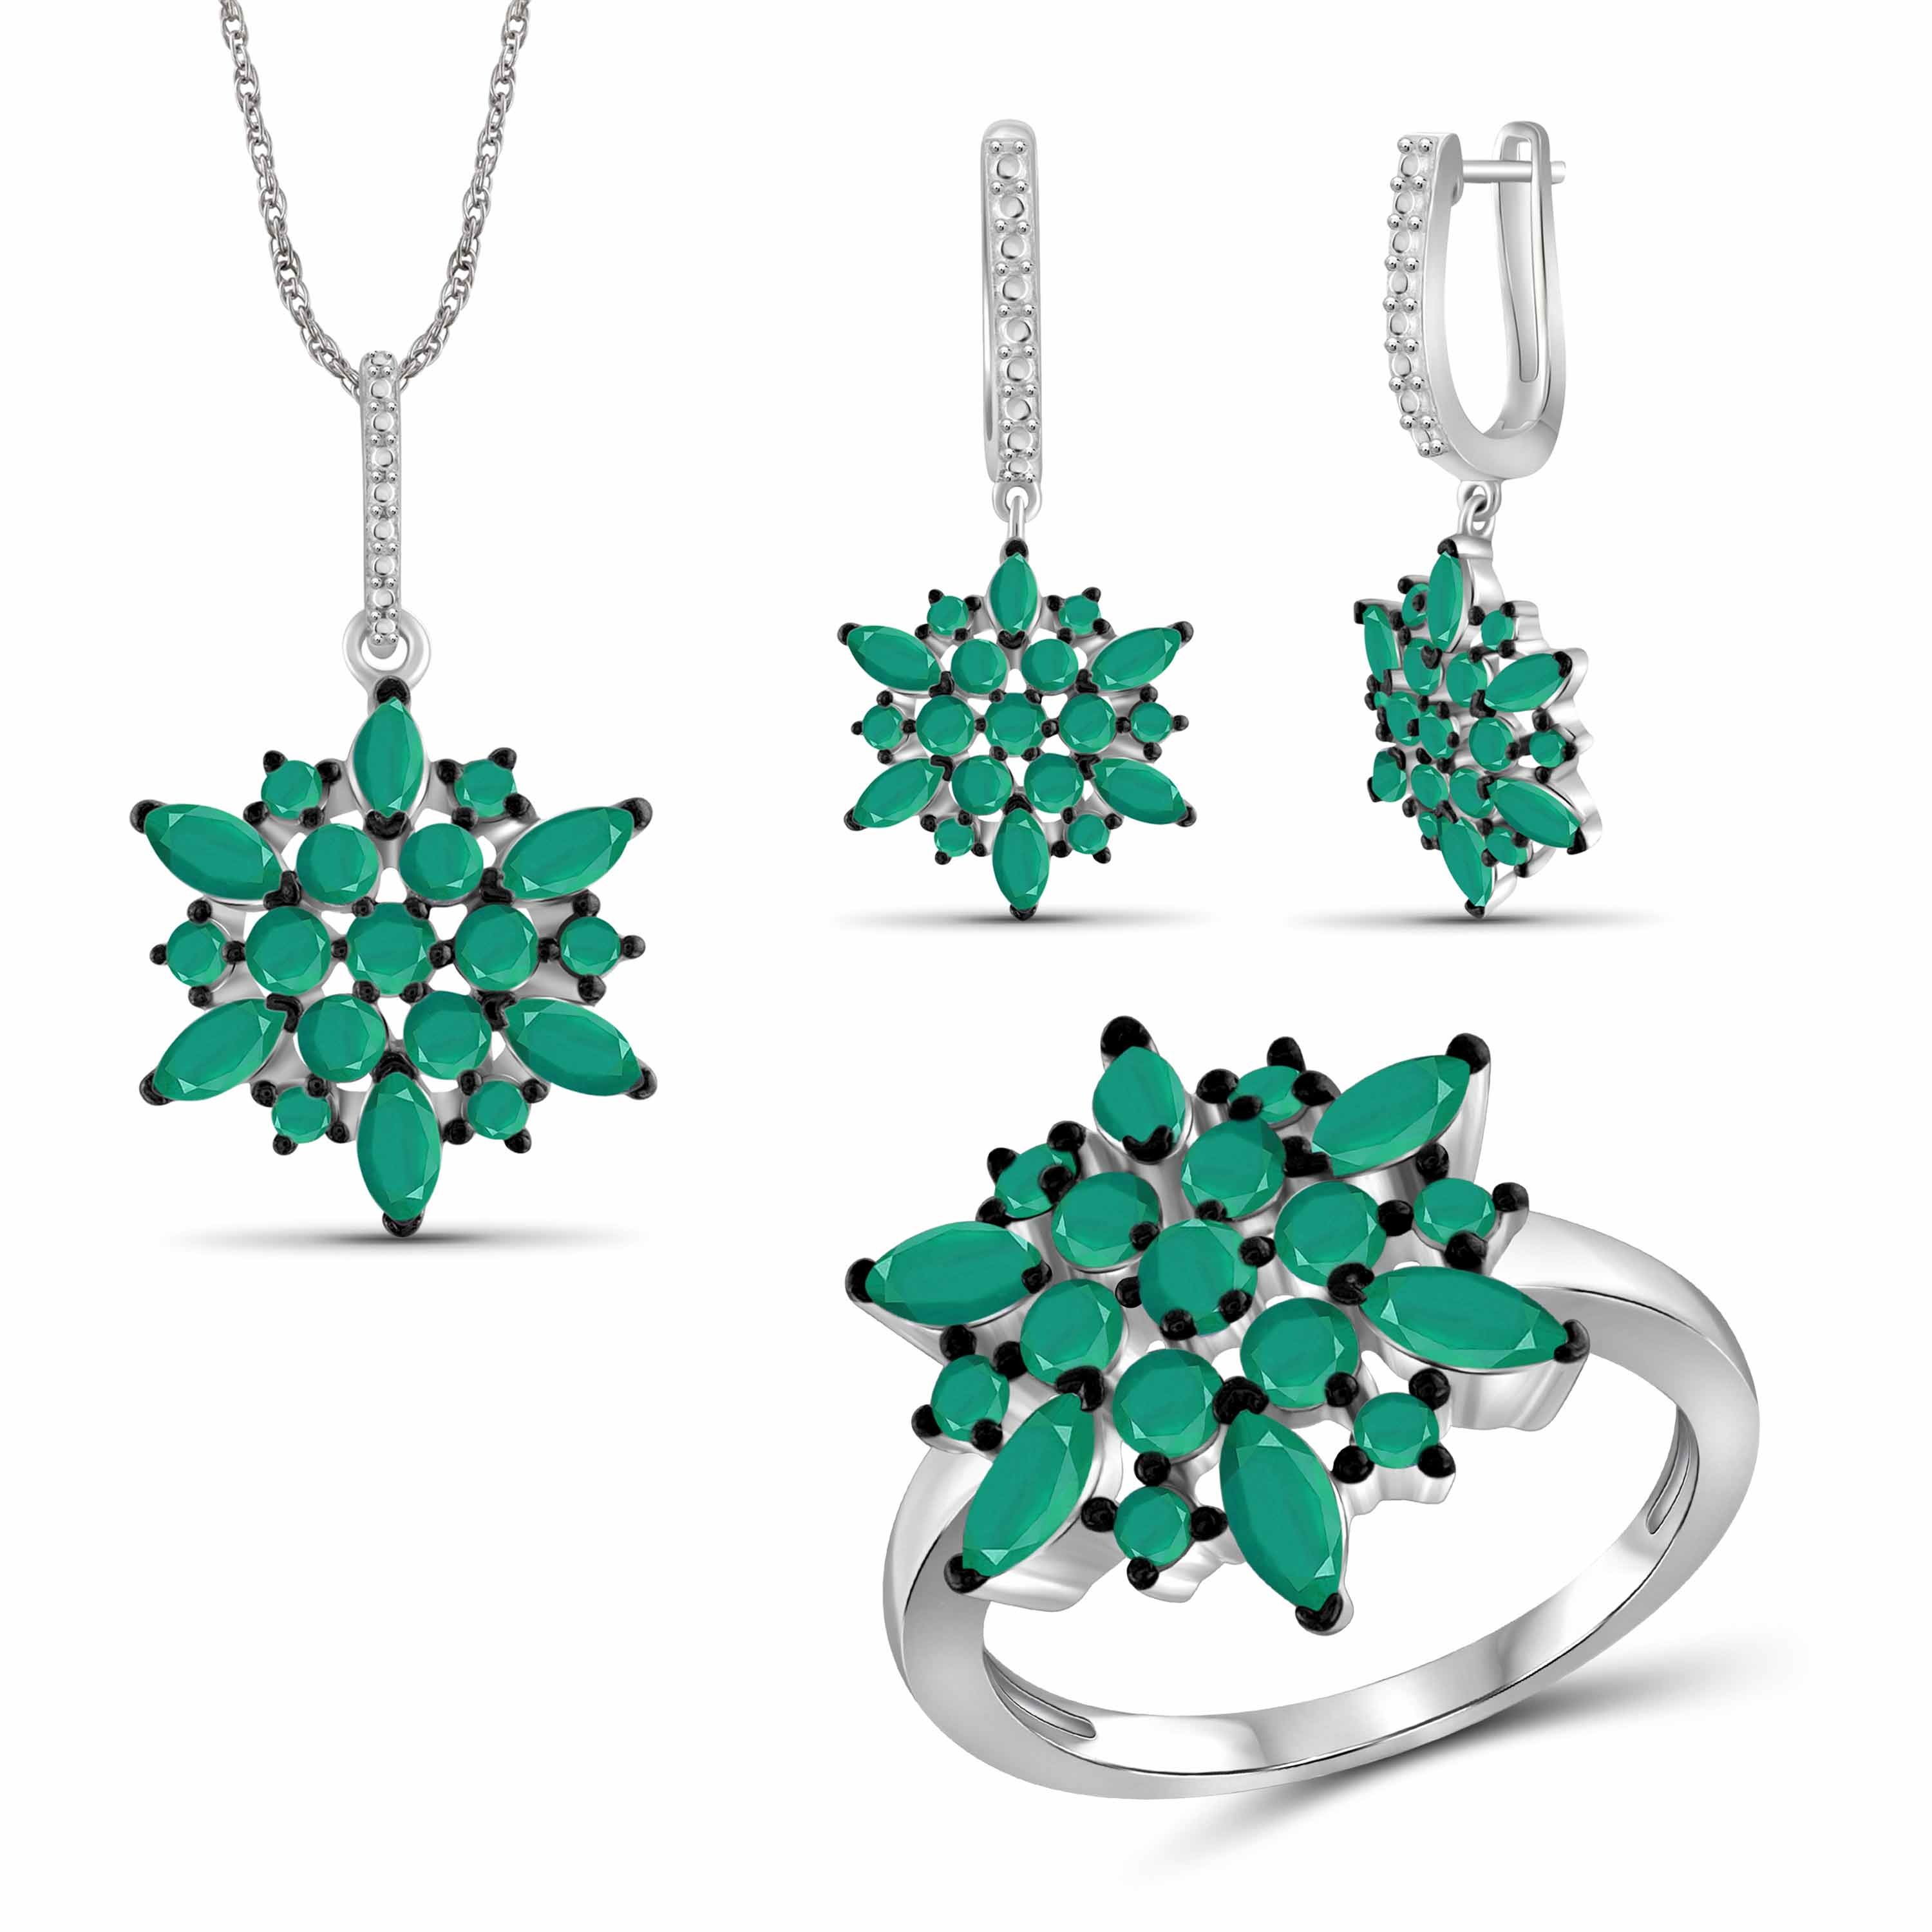 JewelersClub 7.00 Carat T.G.W. Emerald Sterling Silver 3-Piece Jewelry set